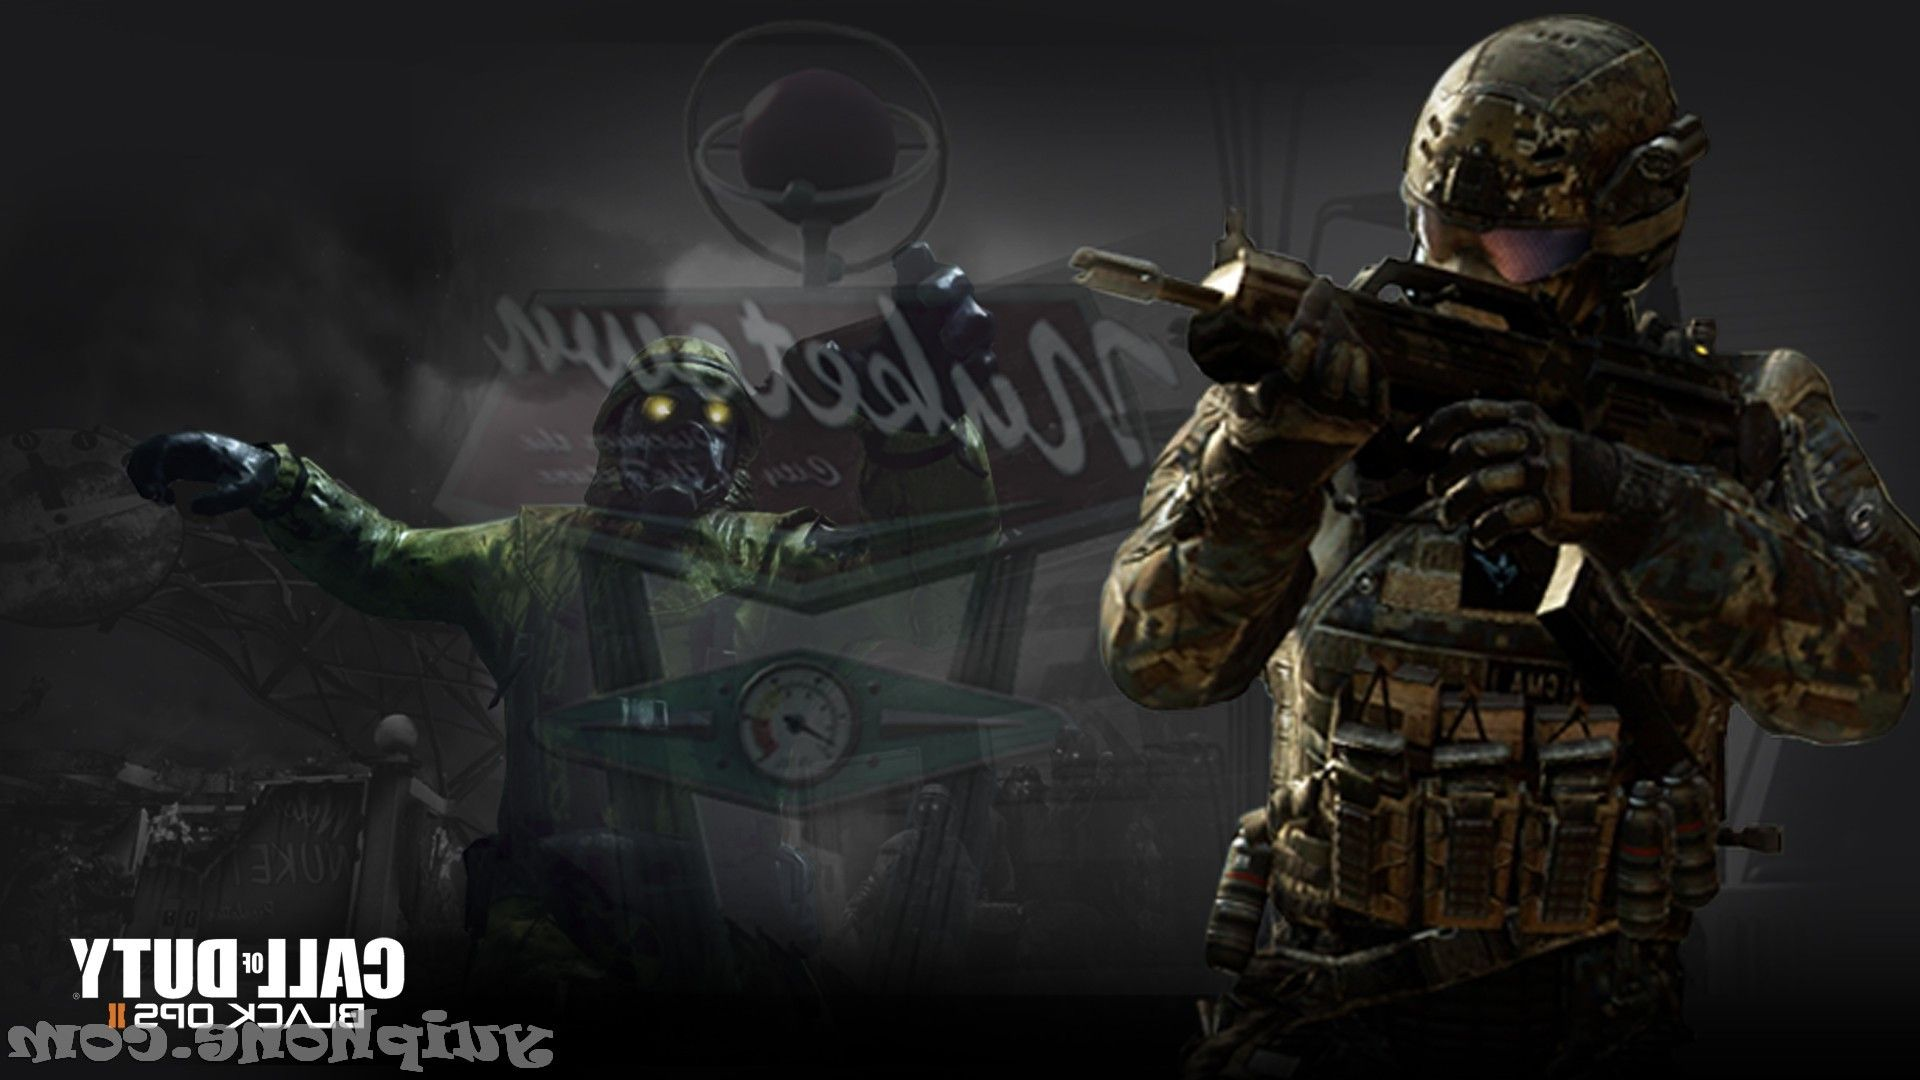 Nuketown Zombies Wallpaper Call Of Duty Black Ops Nuketown Zombies